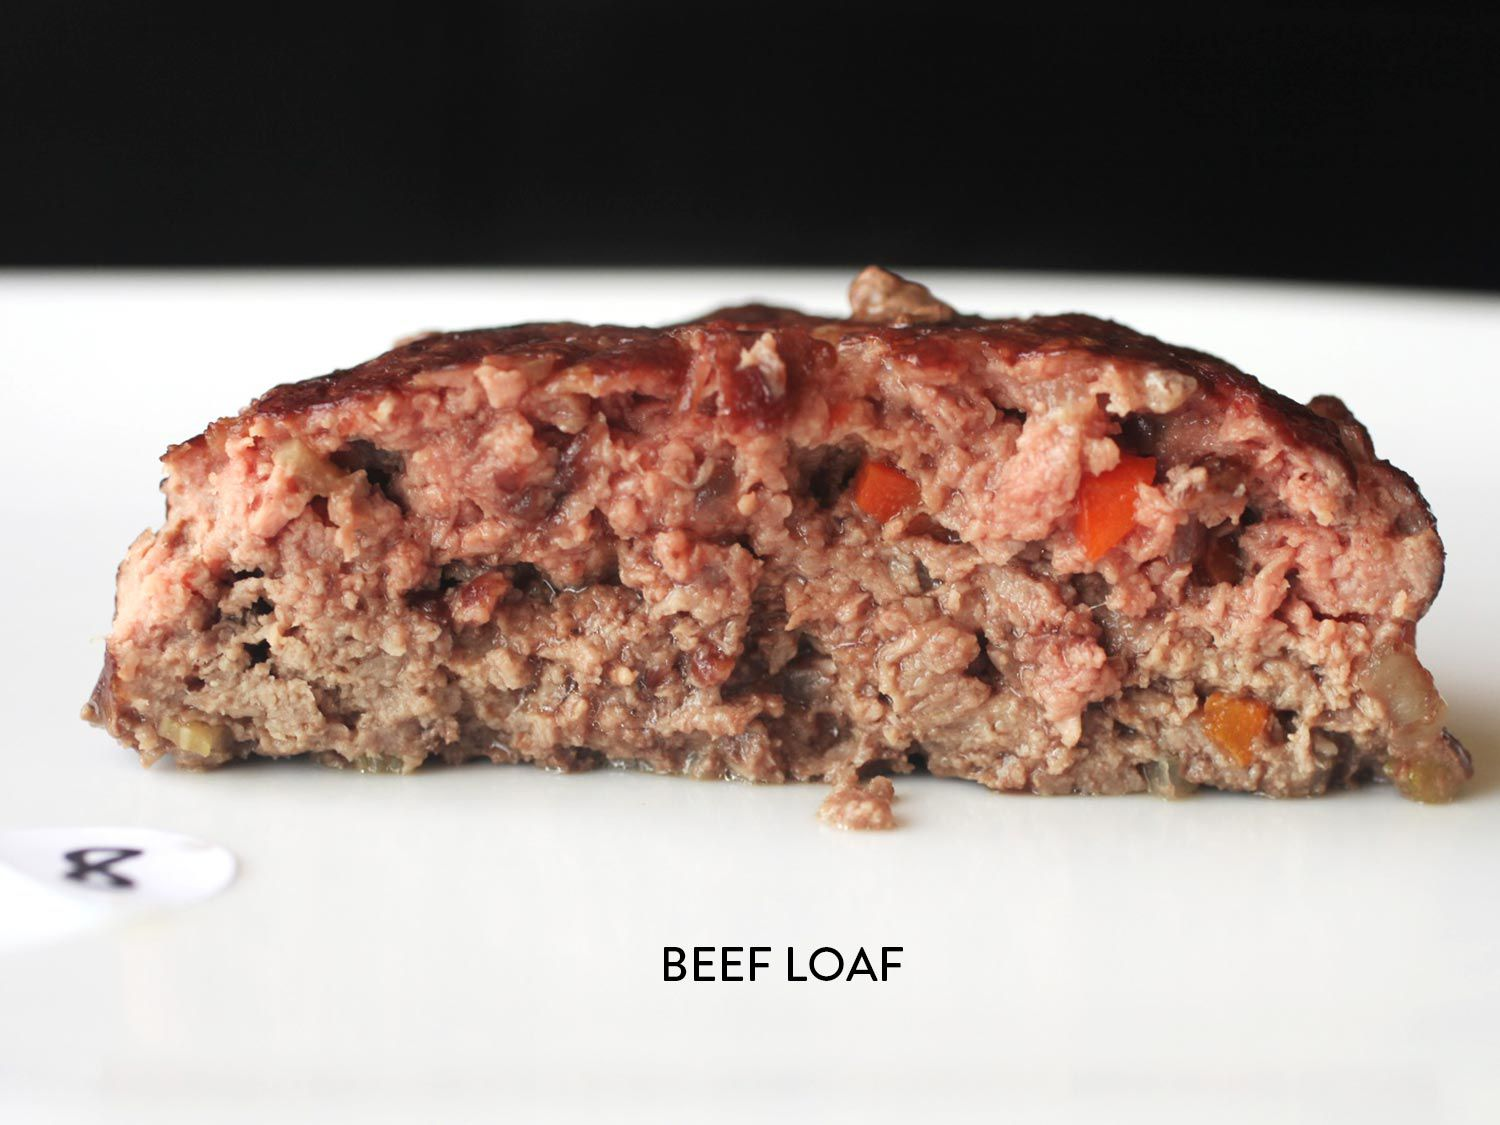 a cross-section of meatloaf made with all beef